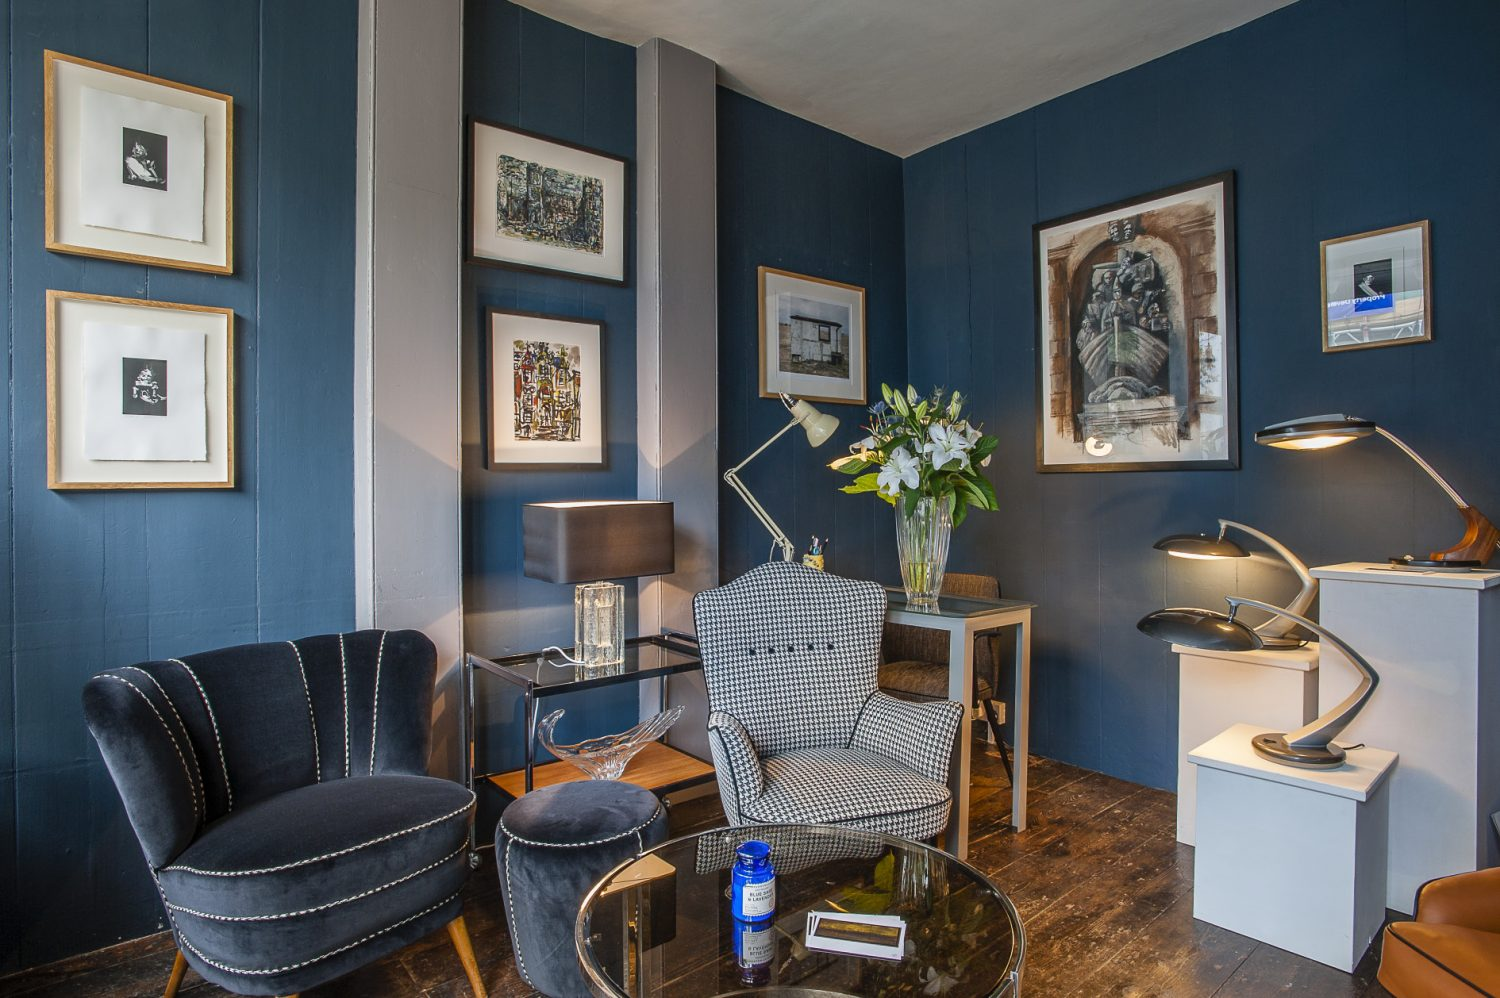 Christine sources mid-20th century chairs and has them restored and re-upholstered for her shop The Kula. The walls are painted in Hague Blue by Farrow & Ball. The 1960s Ice Glass lamp was designed by Uno Westerberg